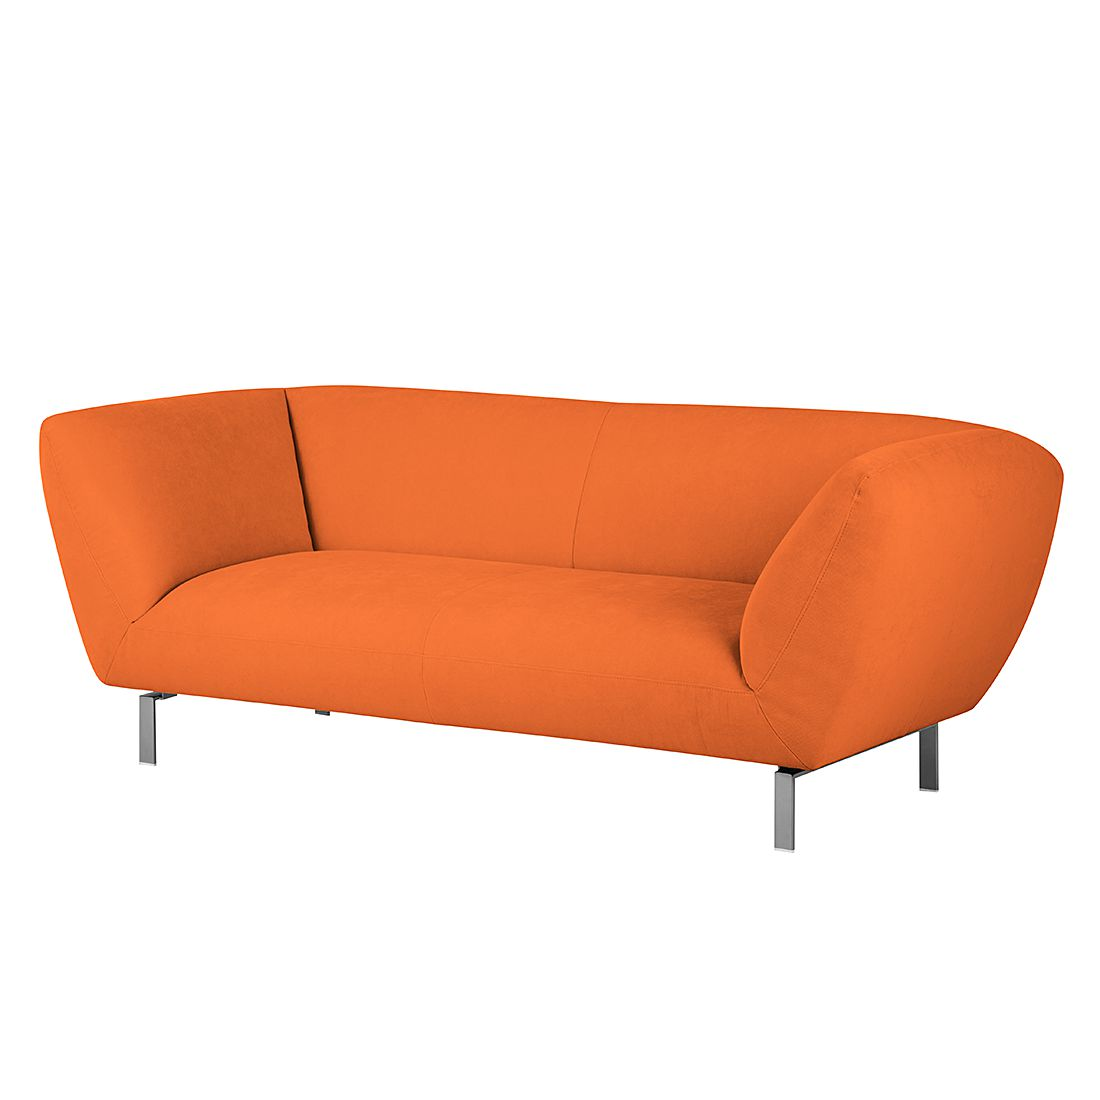 Sofa Blues (2-Sitzer) - Microfaser - Orange, Ultsch Polstermöbel